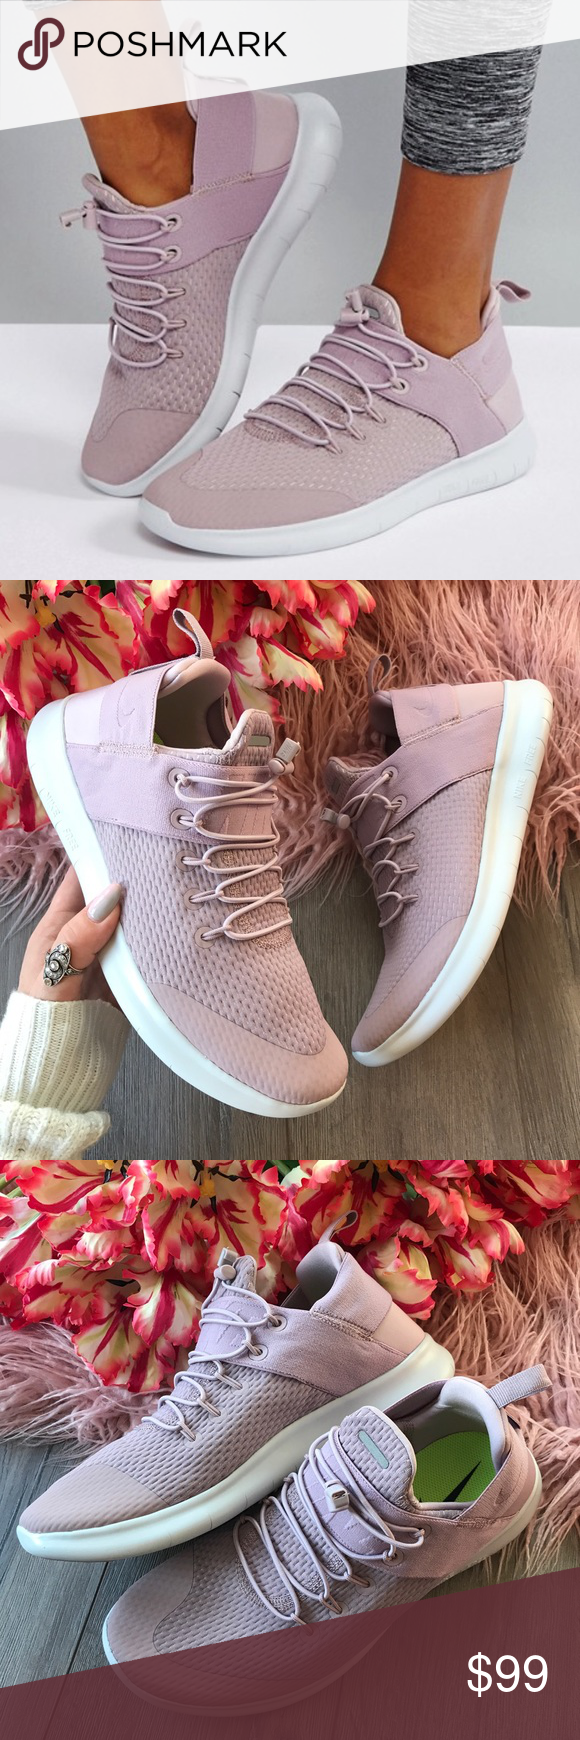 d9d69e8c5ea97 NWT Nike Free RN cmtr 2017 lilac Brand new no box lid. Price is  firm!!Commute in style in the Women s Nike Free RN Commuter 2017 Running  Shoes.